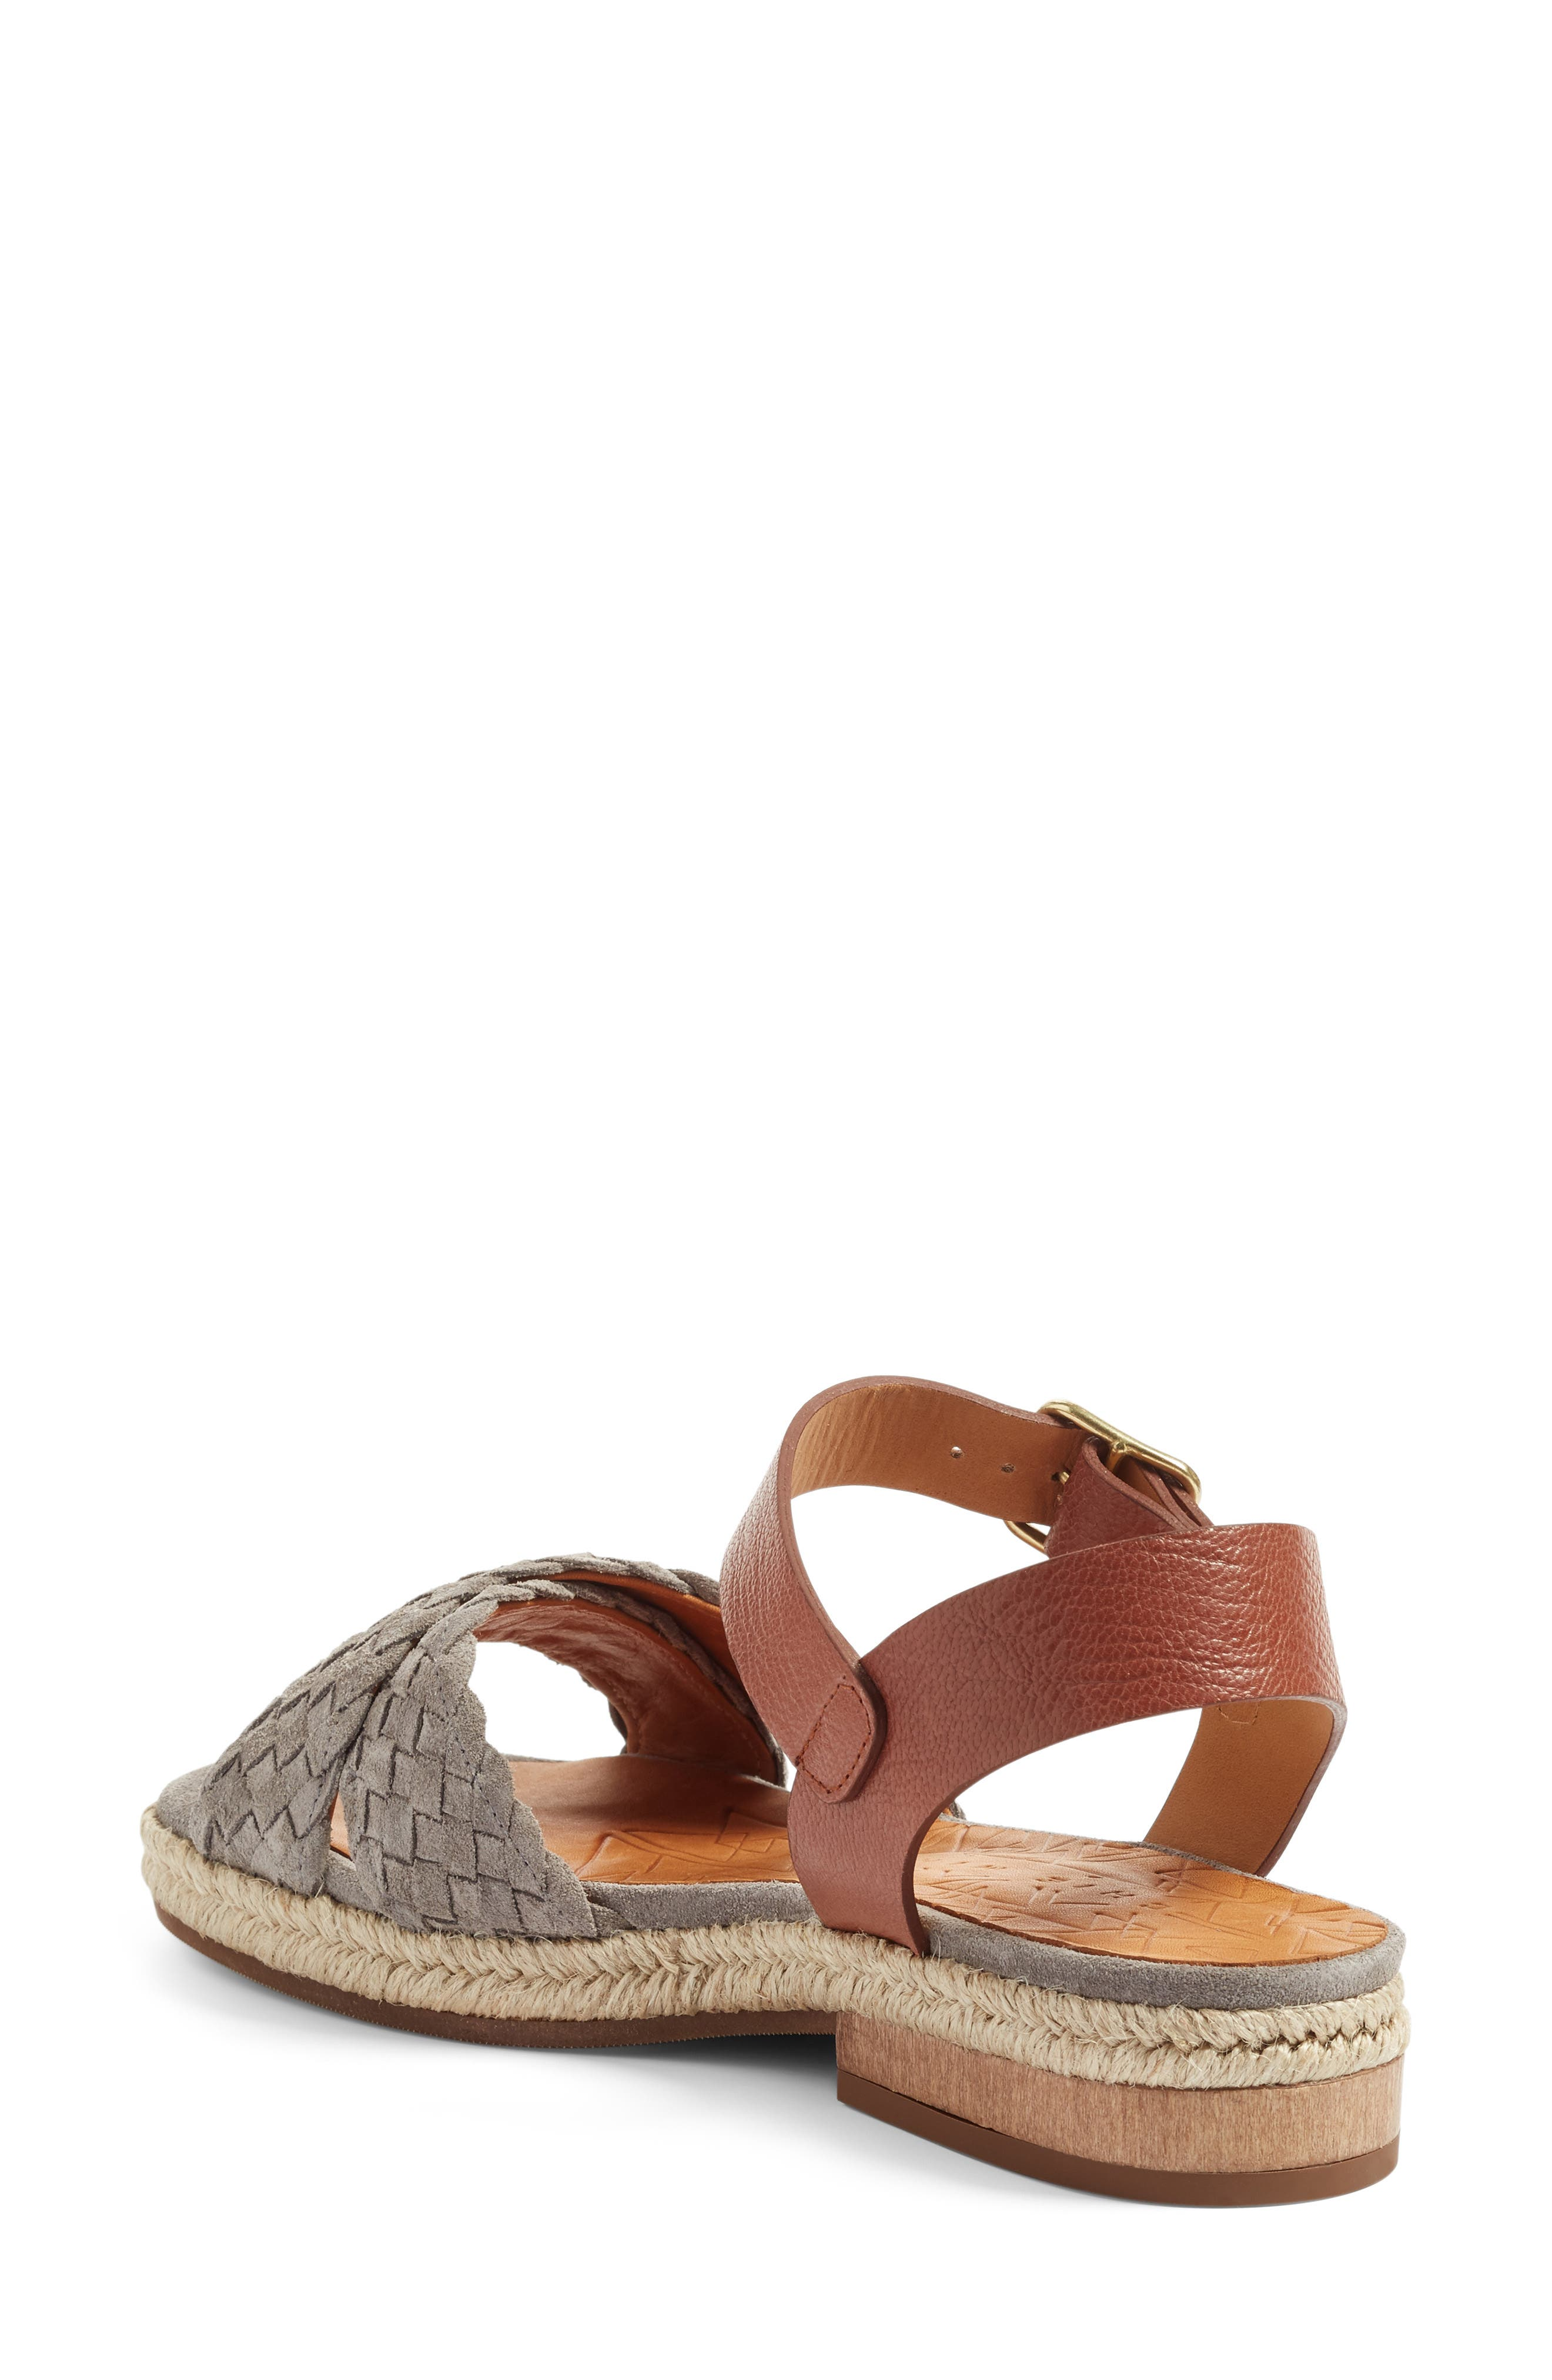 Hena Sandal,                             Alternate thumbnail 2, color,                             Stone/ Castano